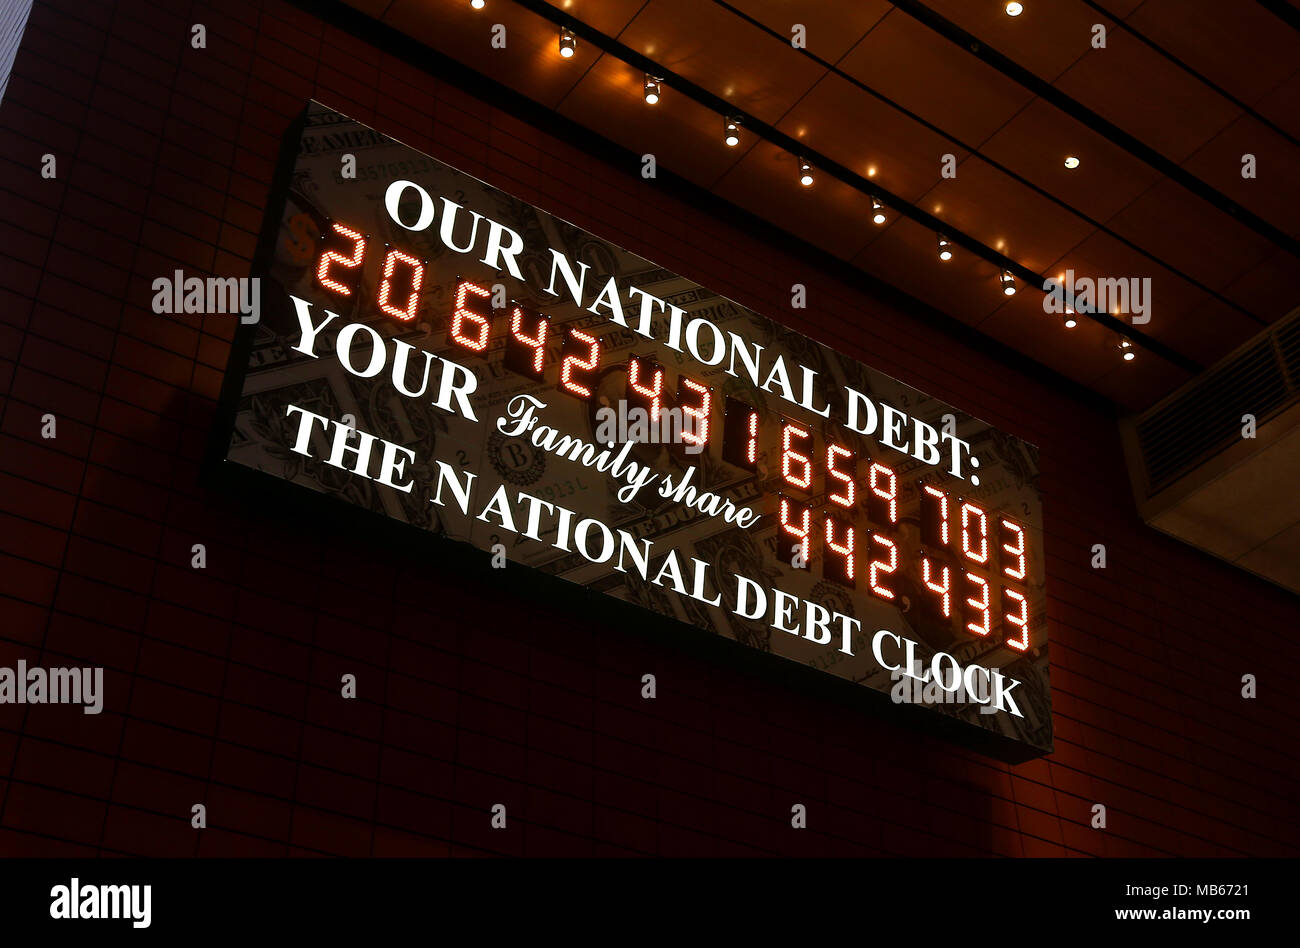 The National Debt Clock just off from Times Square, New York City, USA. The clock shows the ammount of debt owned by USA pictured on March 31 2018. - Stock Image